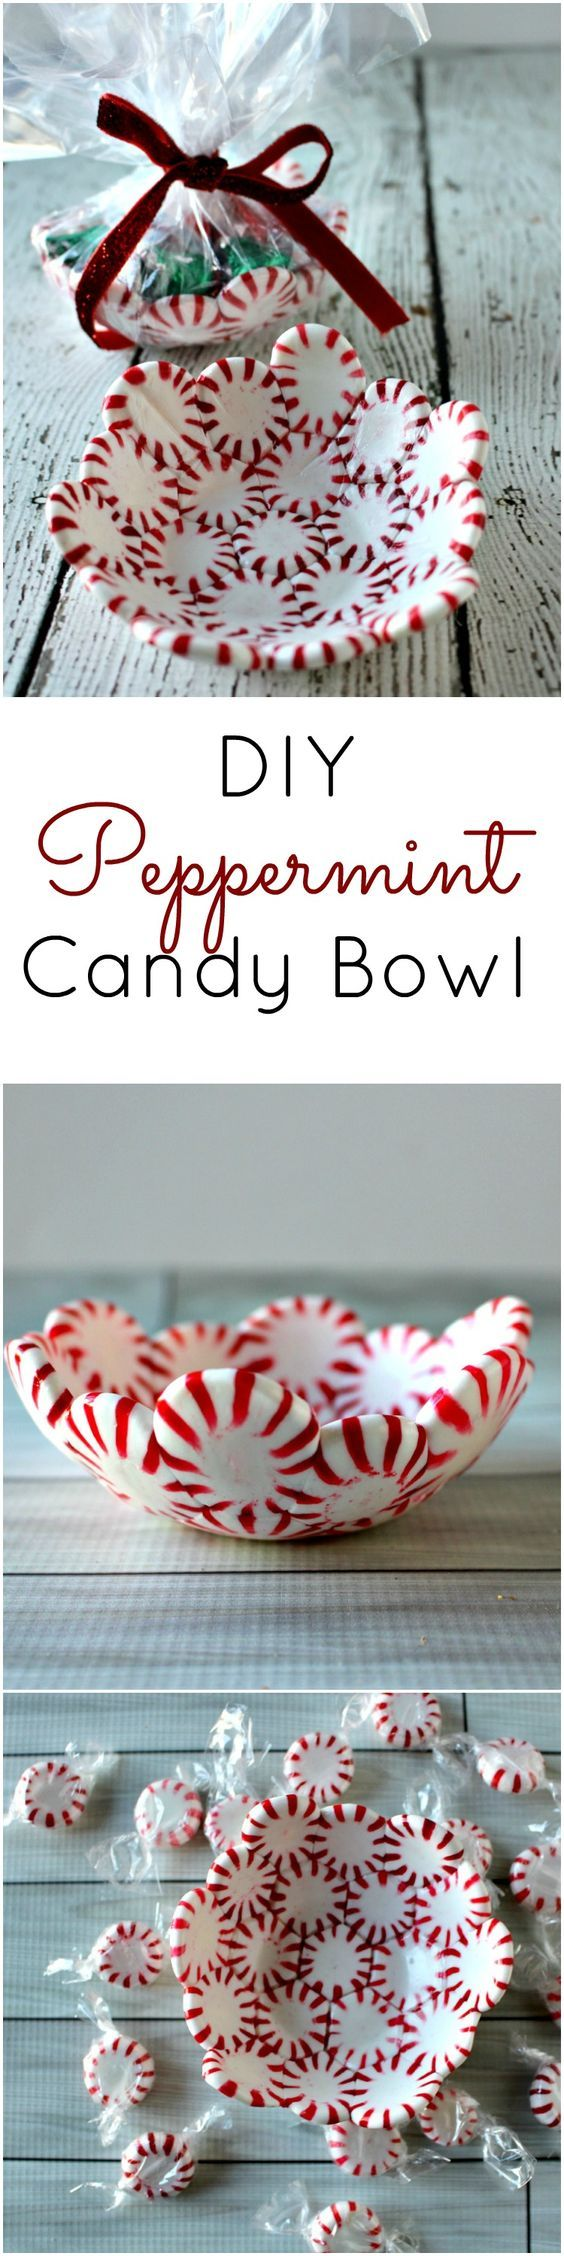 DIY Peppermint Candy Bowl - The perfect (and easiest) DIY Christmas Gift. Fun way to add color to your Christmas party.: